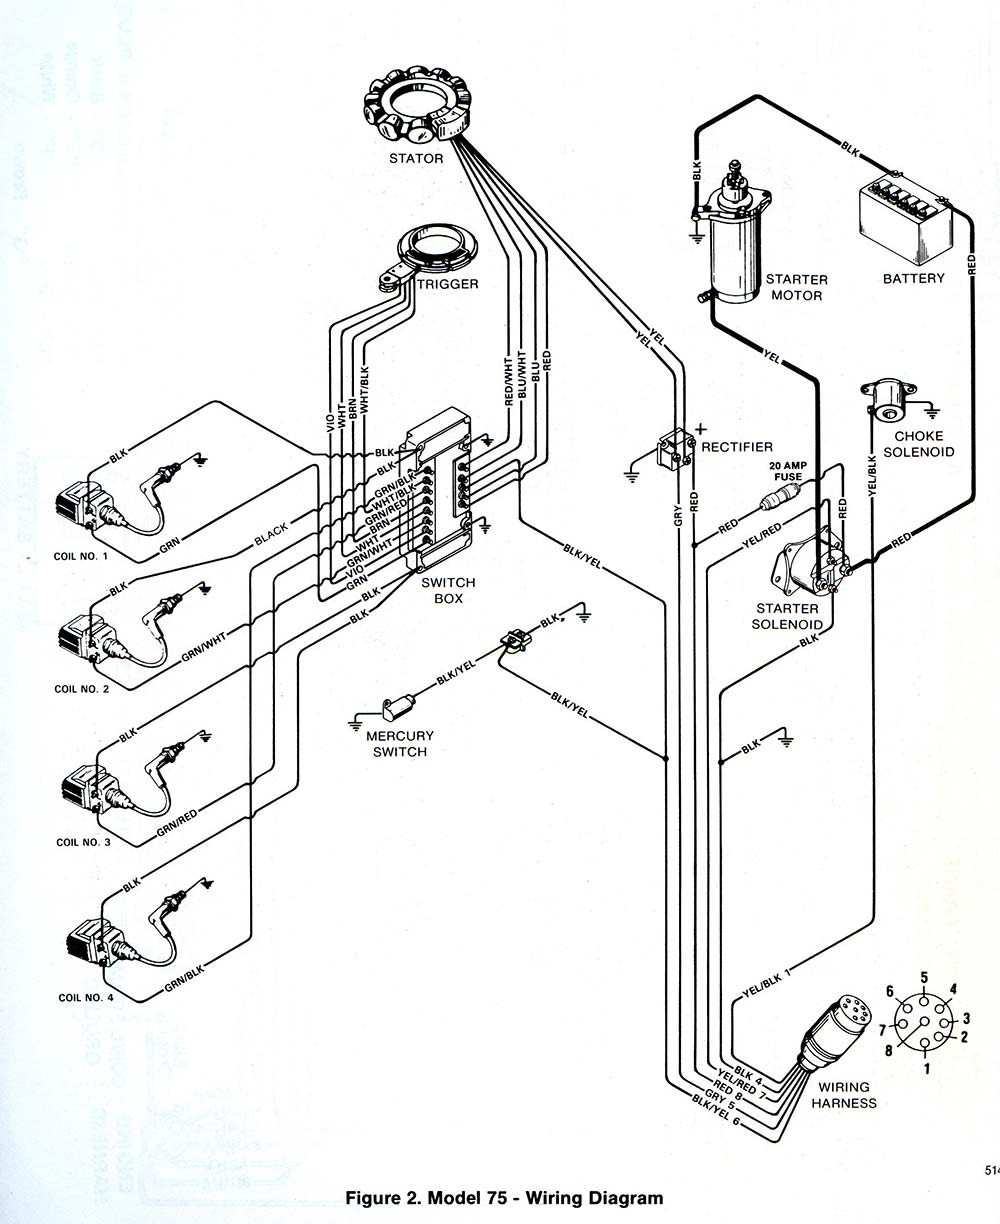 1978 mercury outboard wiring diagram wiring diagram1978 mercury outboard control box wiring diagram wiring diagram